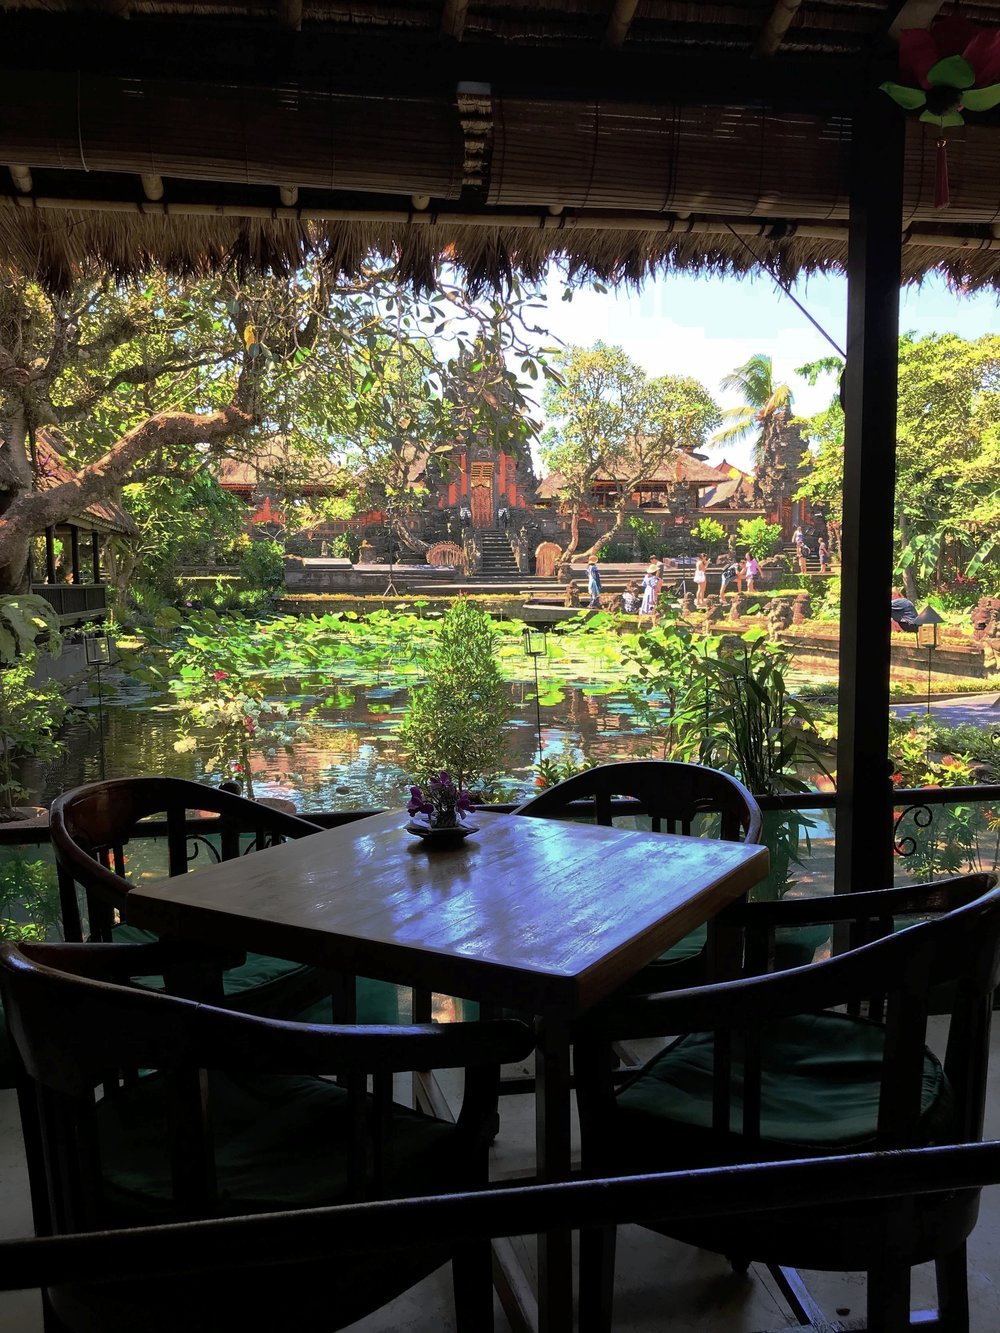 Grab a bite at Cafe Lotus and admire the view